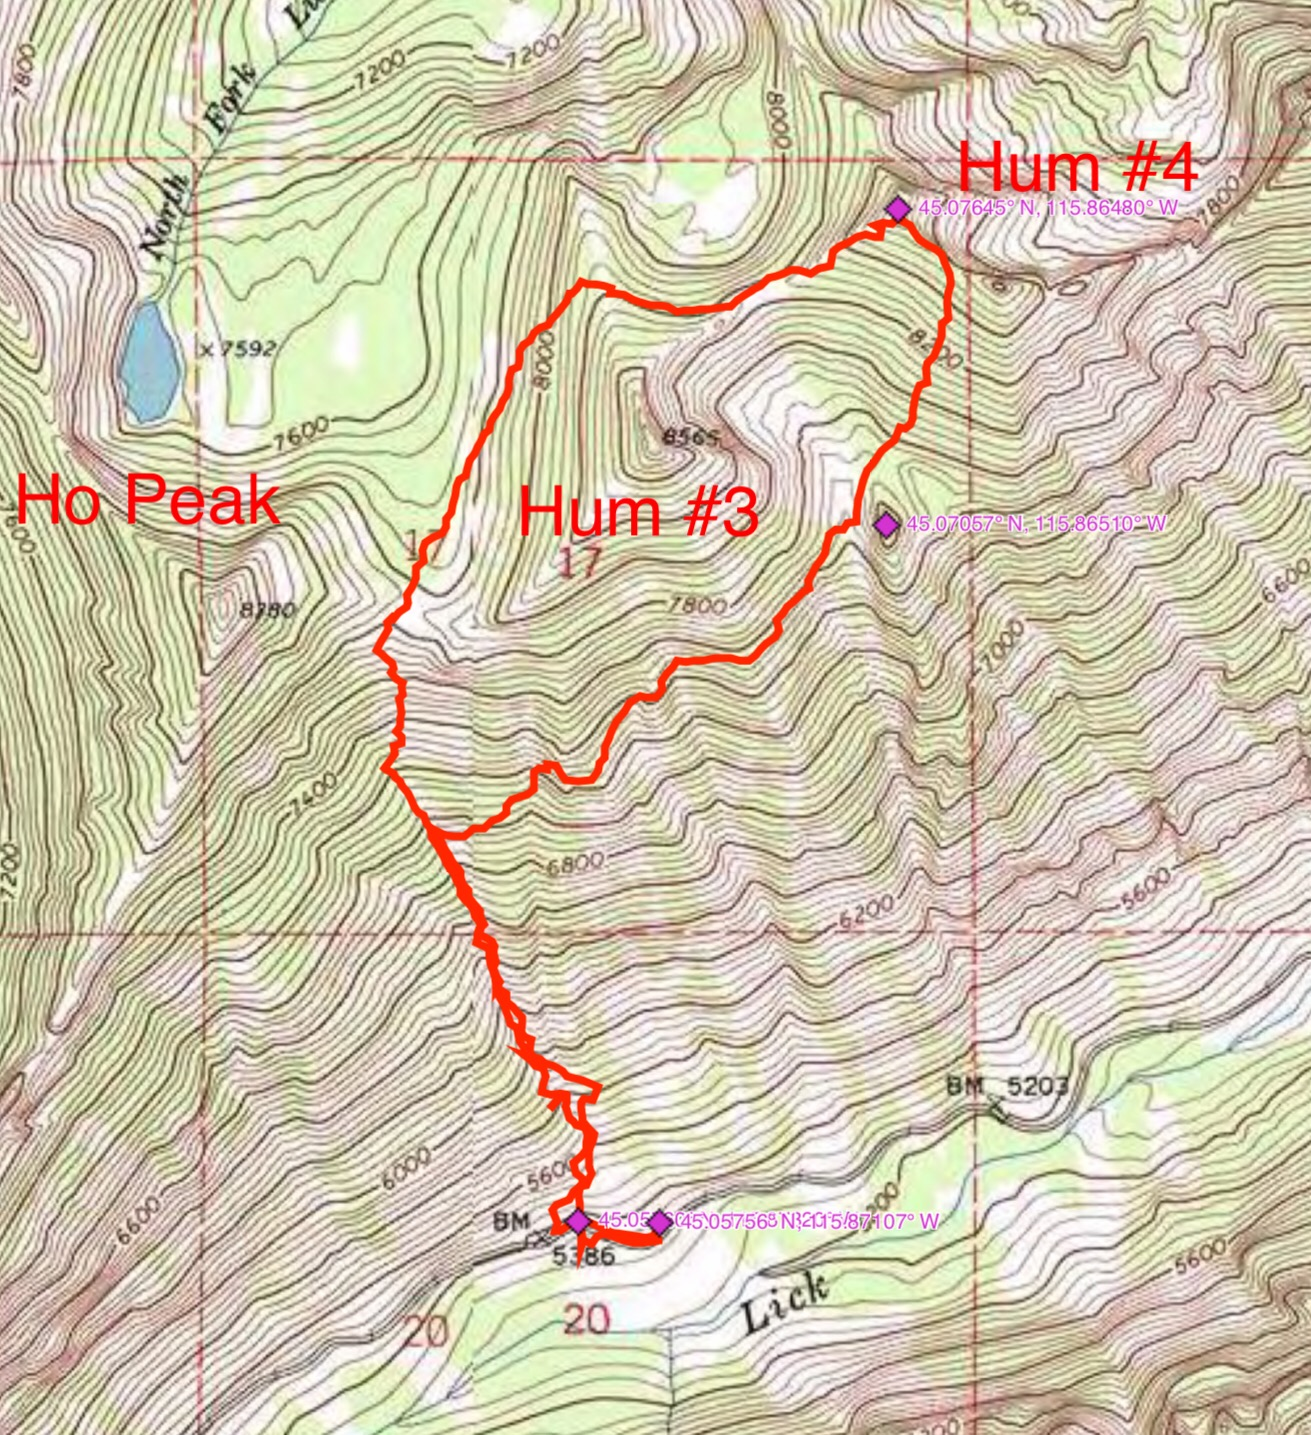 John Platt's GPS track for the Hum #4 first ascent.